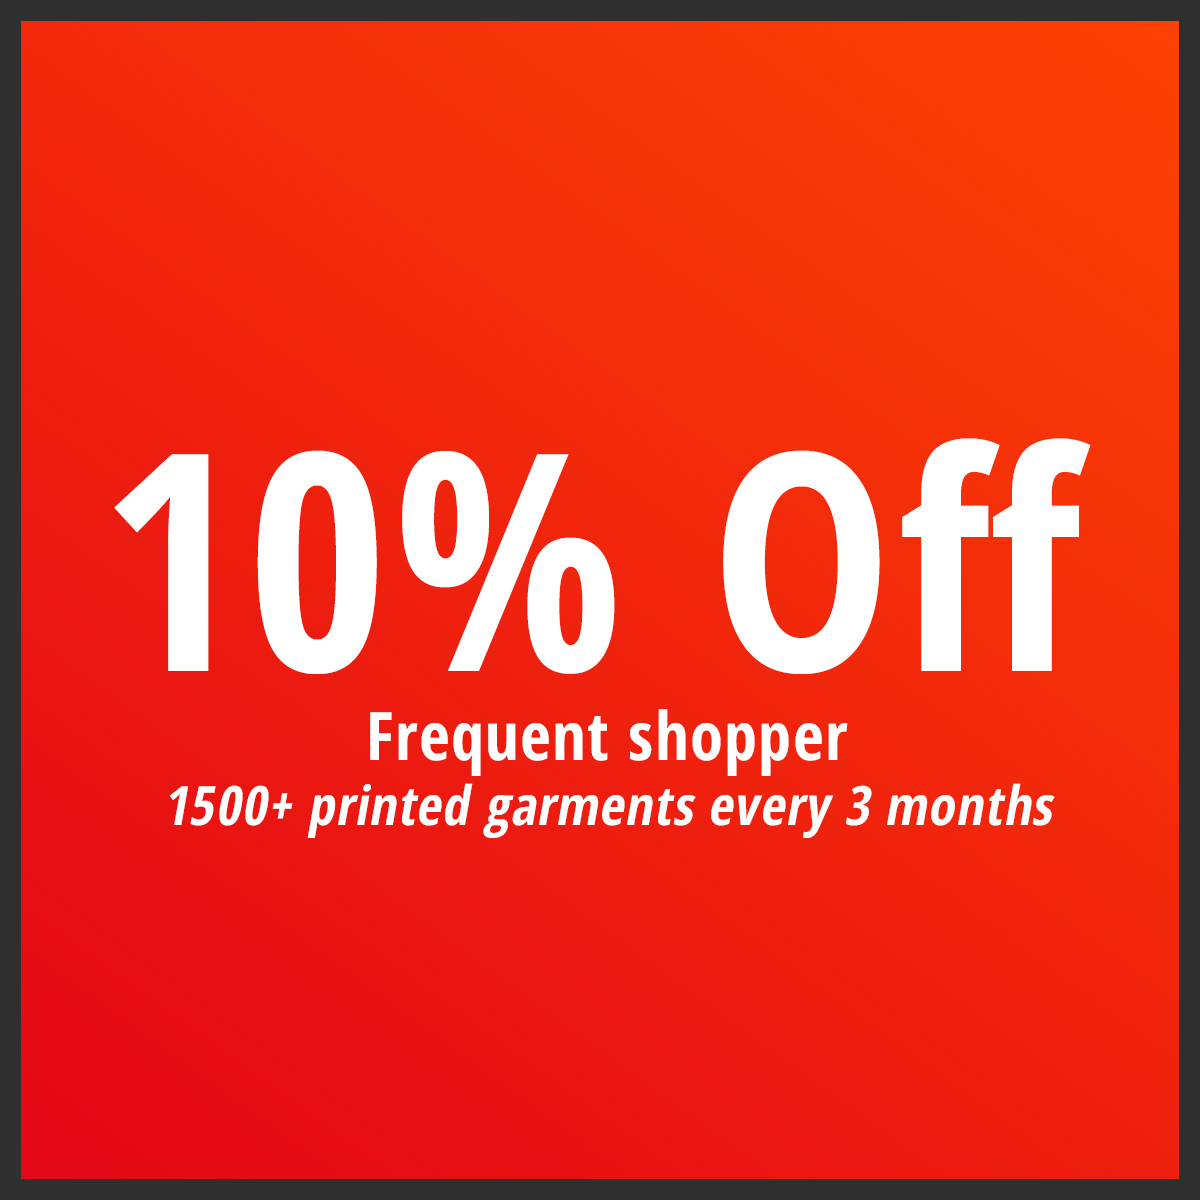 custom-t-shirt-coupon-10off-frequent-shopper